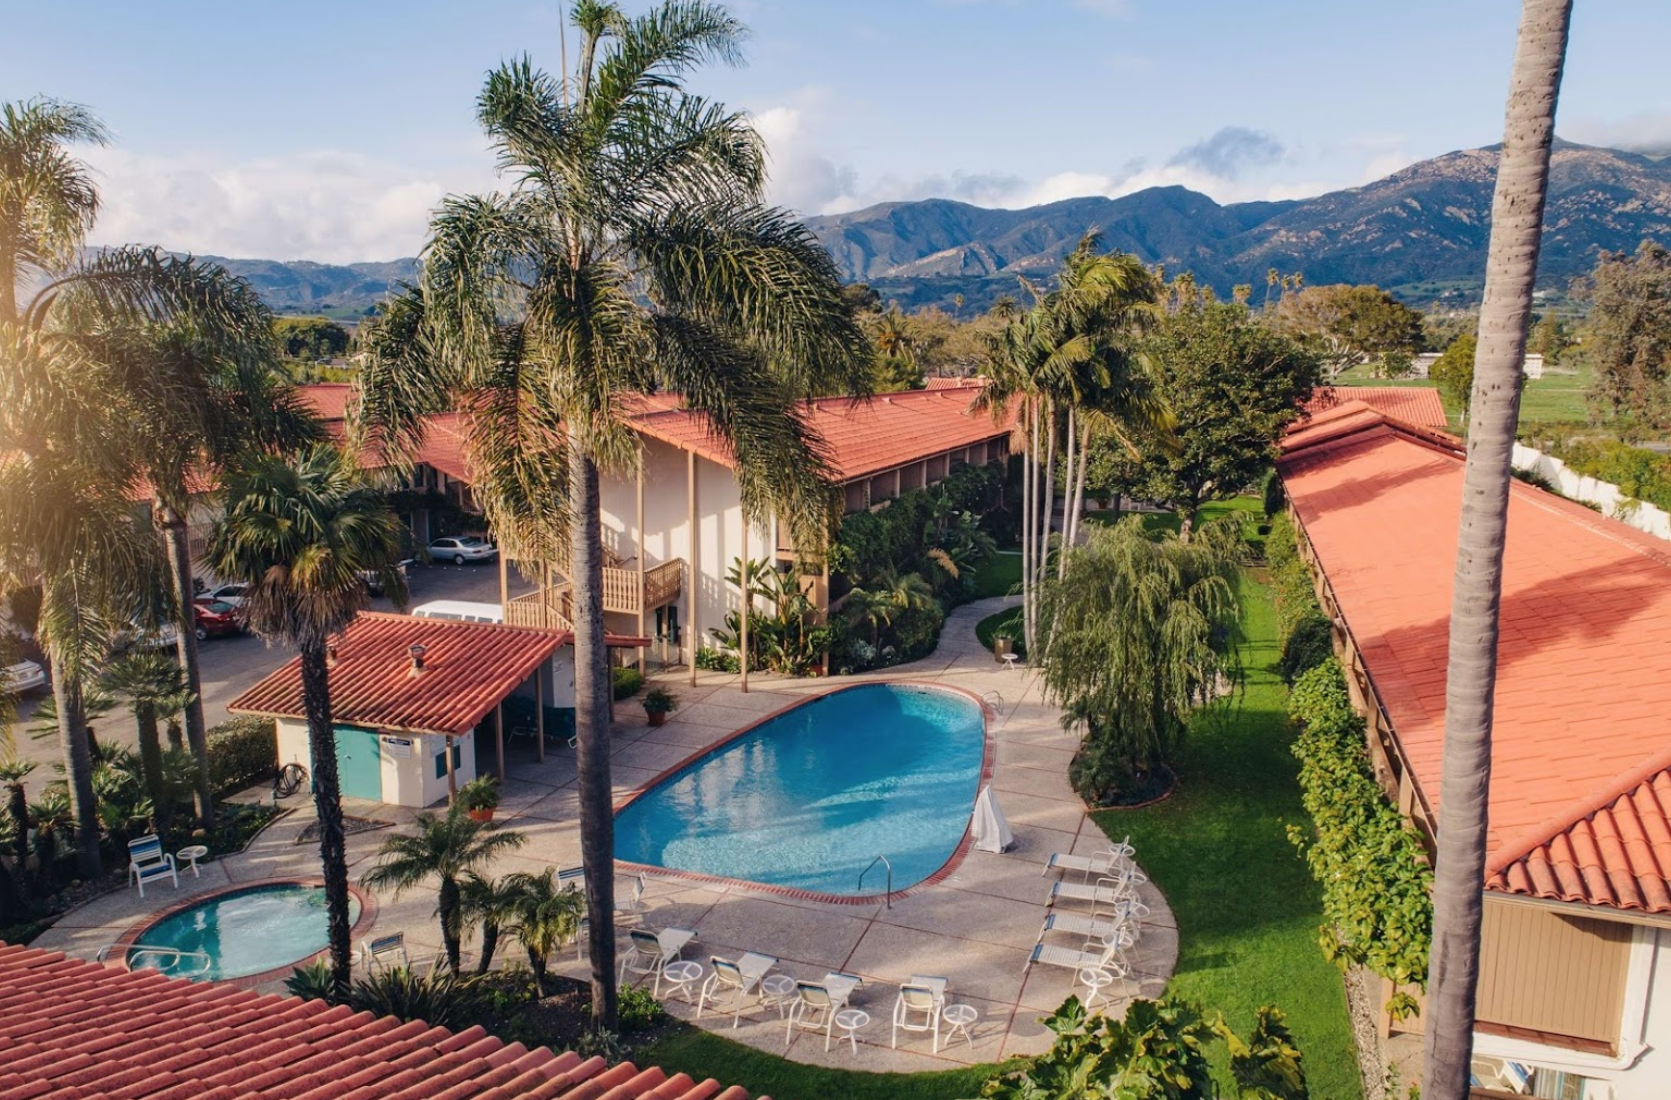 Best Western Plus Pepper Tree Inn - 3850 State St, Santa Barbara, CA 93105Call to reserve with the group code: Santa Swing 800-338-0030Double and Single rooms (before taxes)$169 per night for 12/28/19 - 1/1/20This hotel is 4 Miles from the Carrillo Ballroom and where the classes will be held (9 Min Drive)